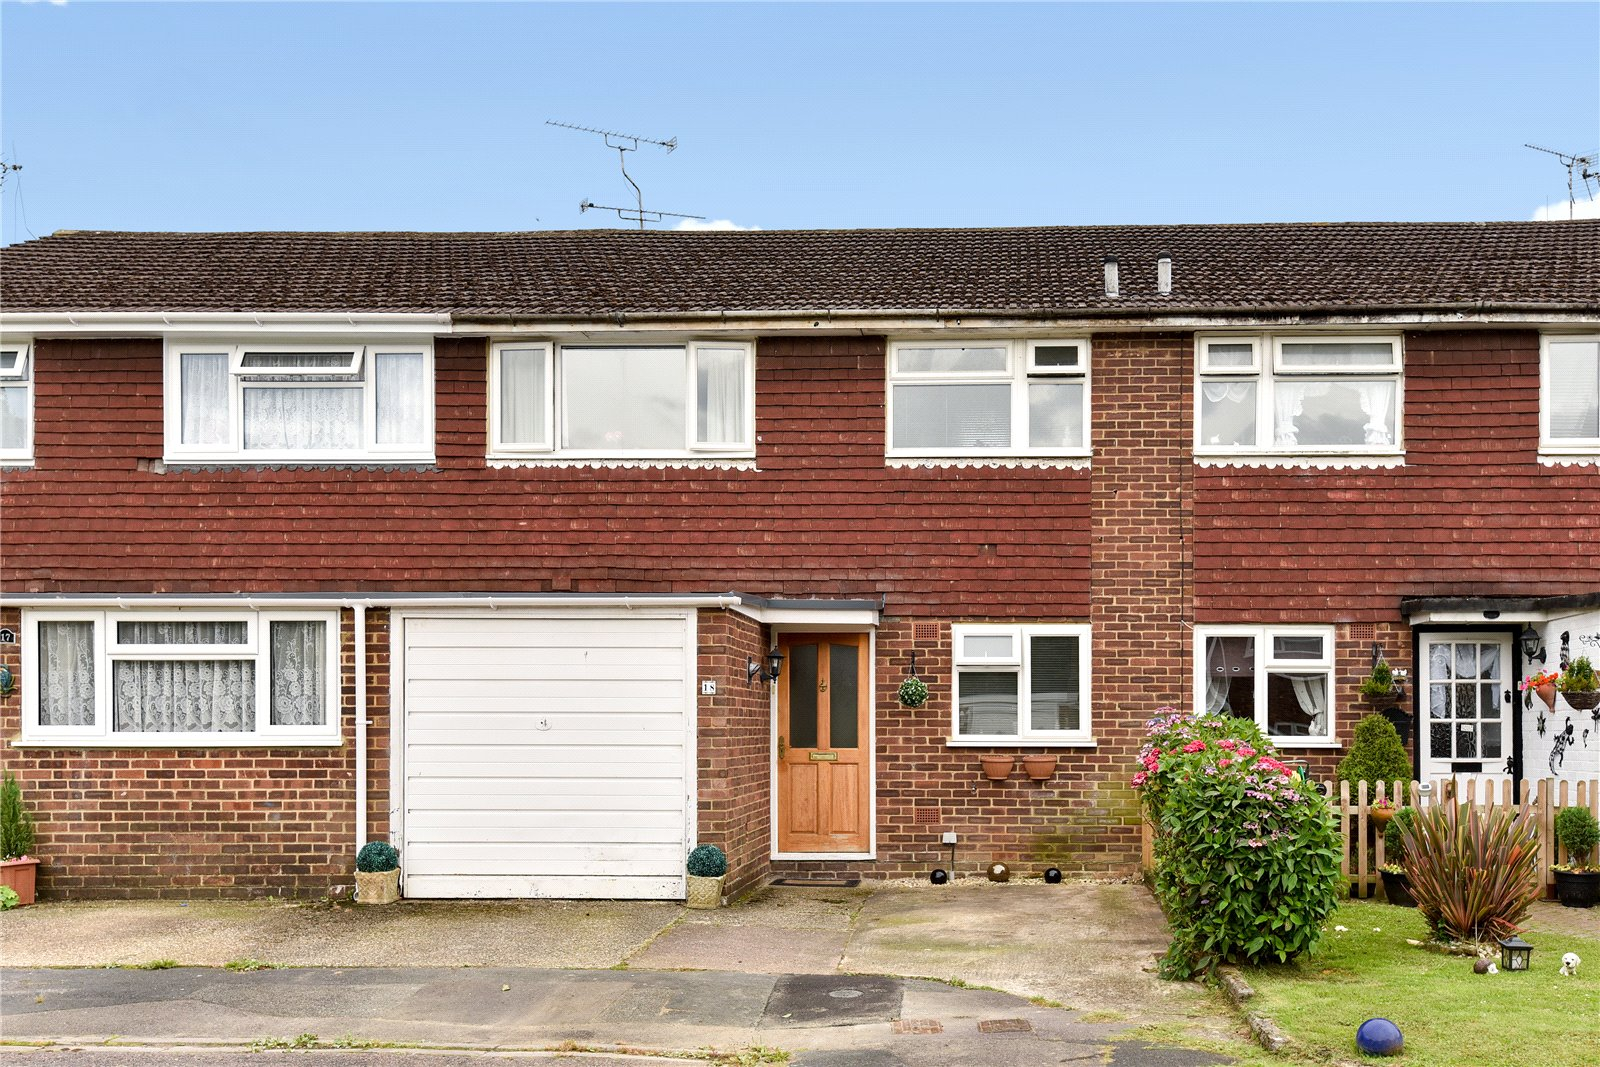 3 Bedrooms Terraced House for sale in Winchester Way, Blackwater, Camberley, GU17